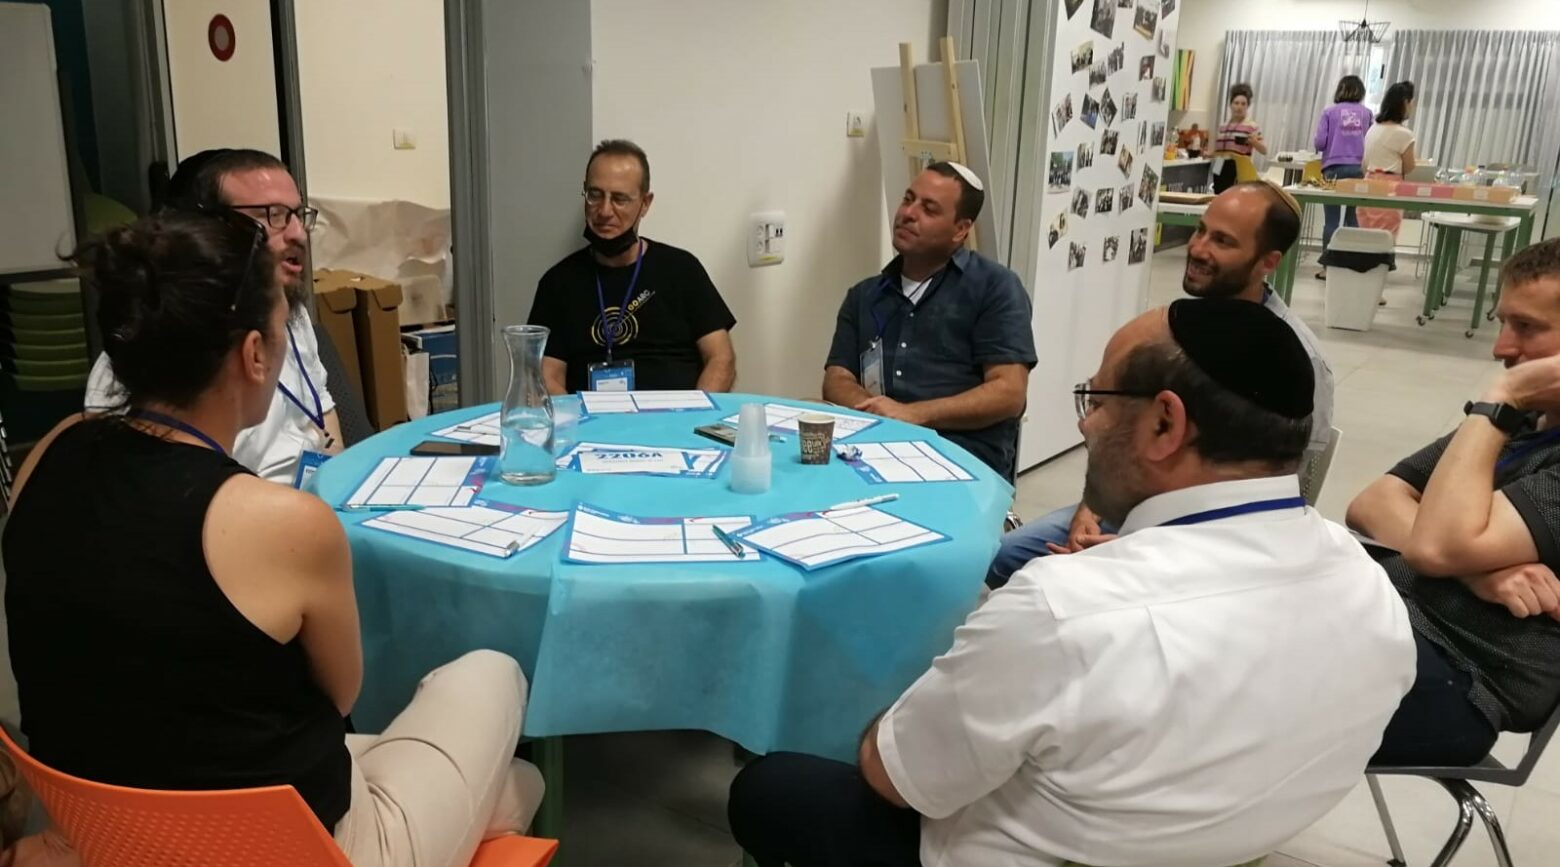 At Co.Lab, Israelis from diverse ethnic and religious backgrounds meet and talk to learn about each other's communities and collaborate on programs to build a more cohesive society.